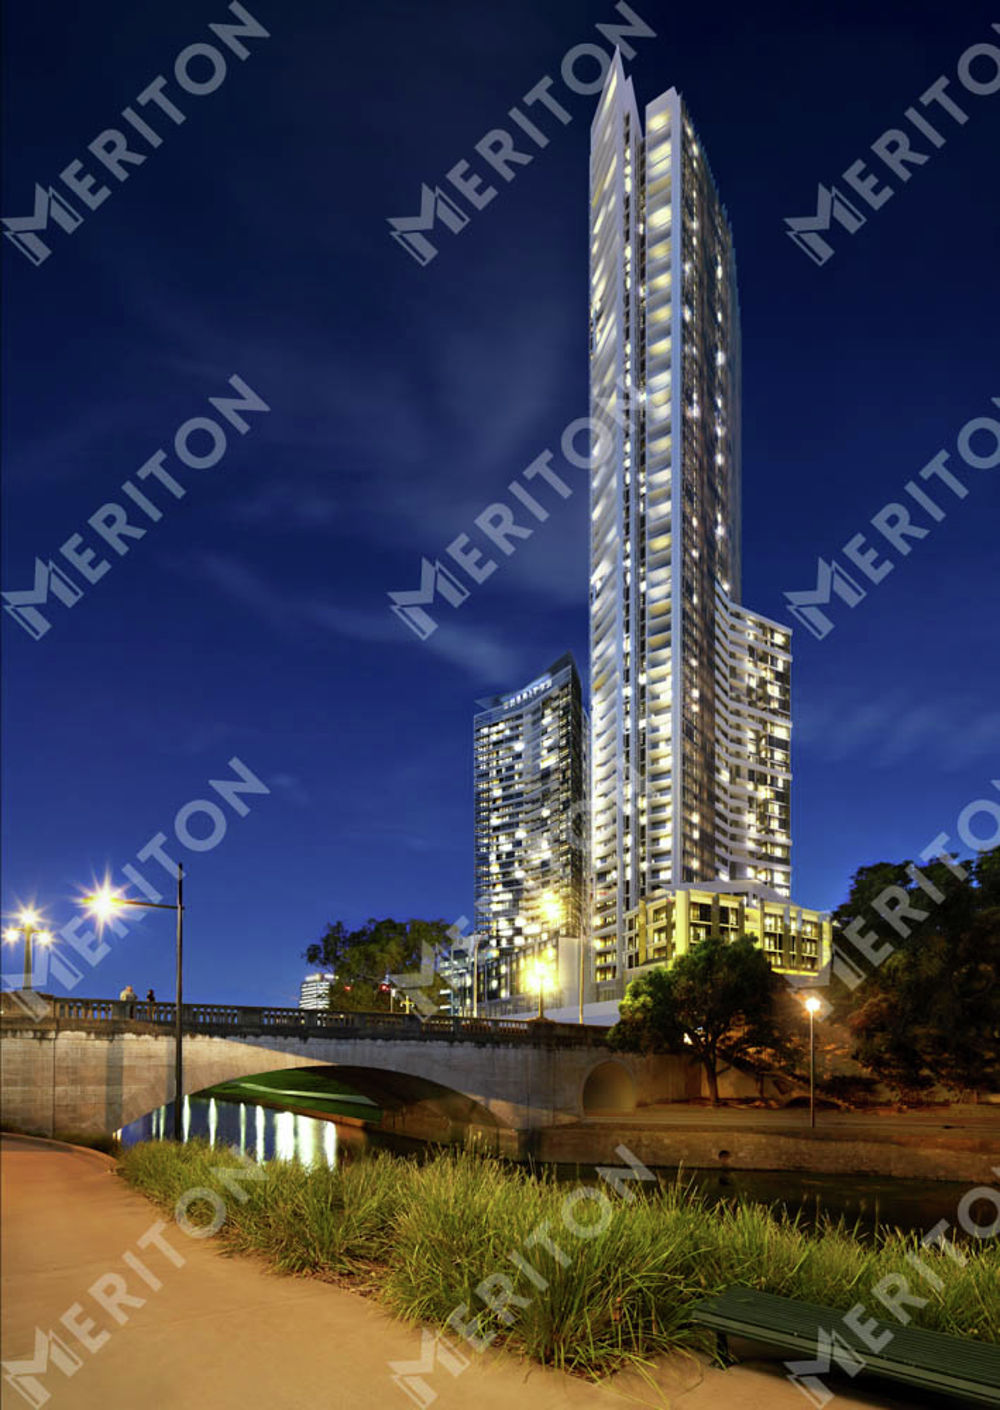 Property For Sale in Parramatta